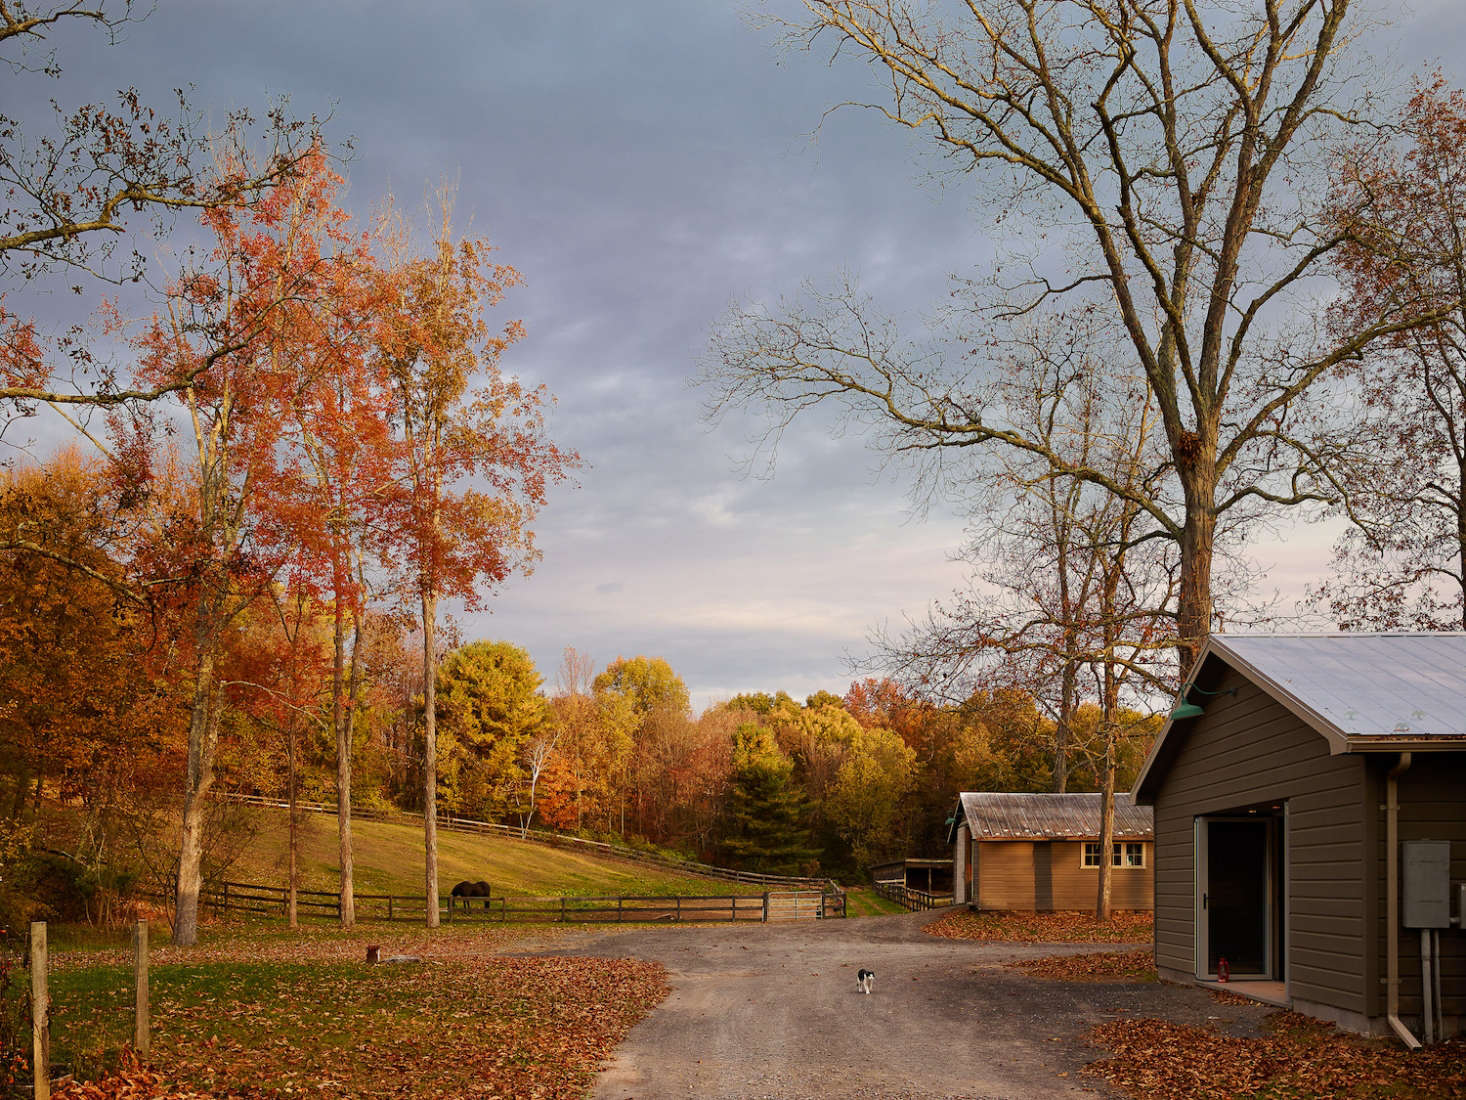 There are two barns on the property; the first barn is now the guesthouse with hay storage.